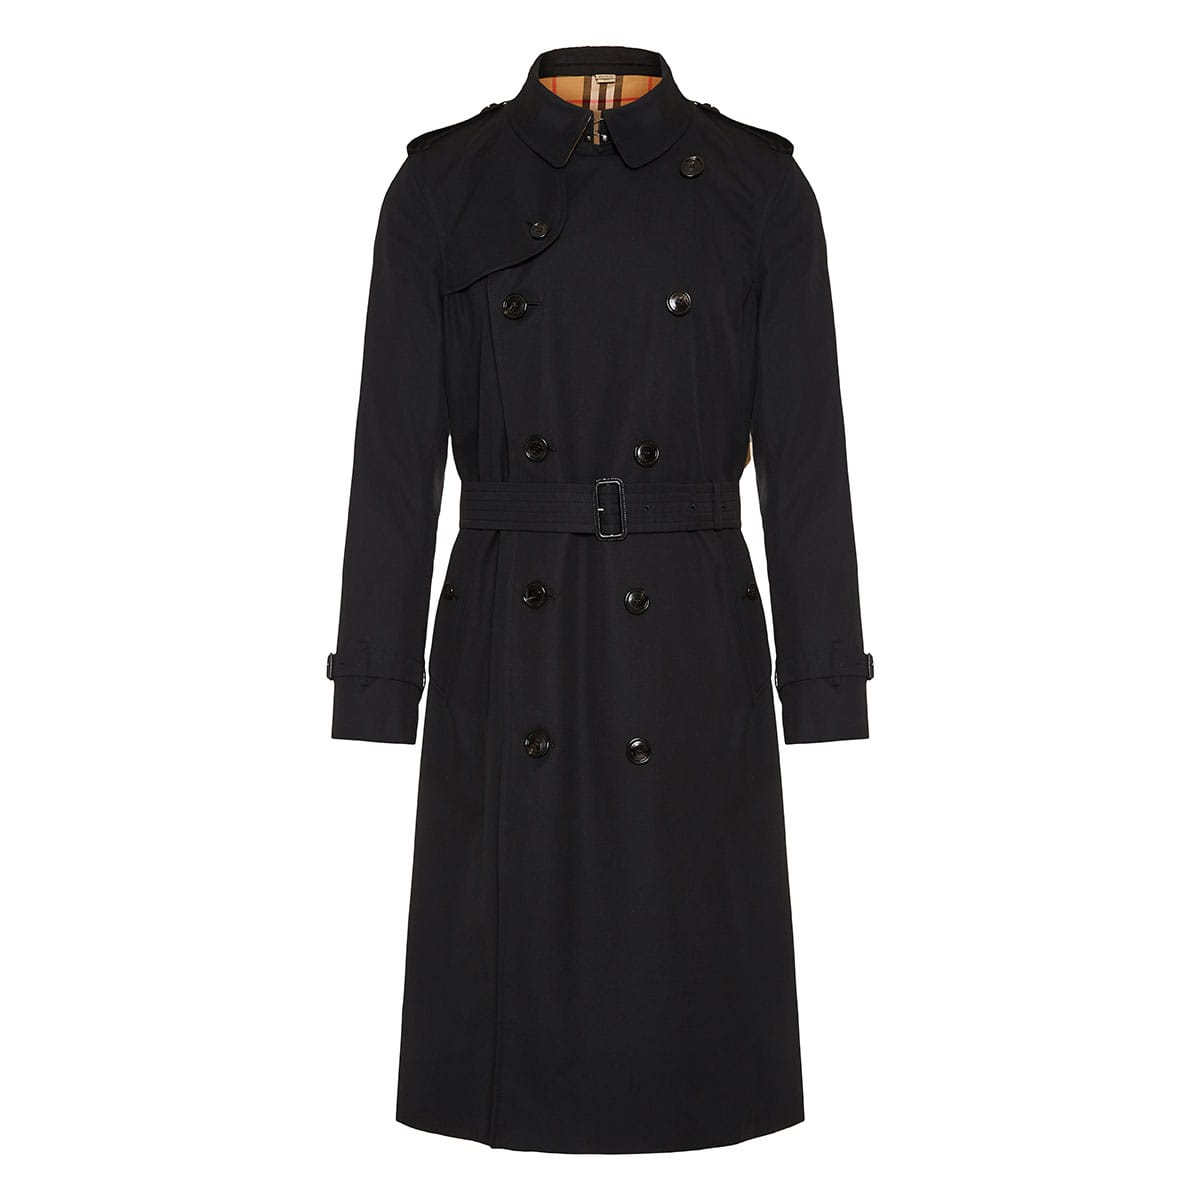 The Chelsea cotton trench coat